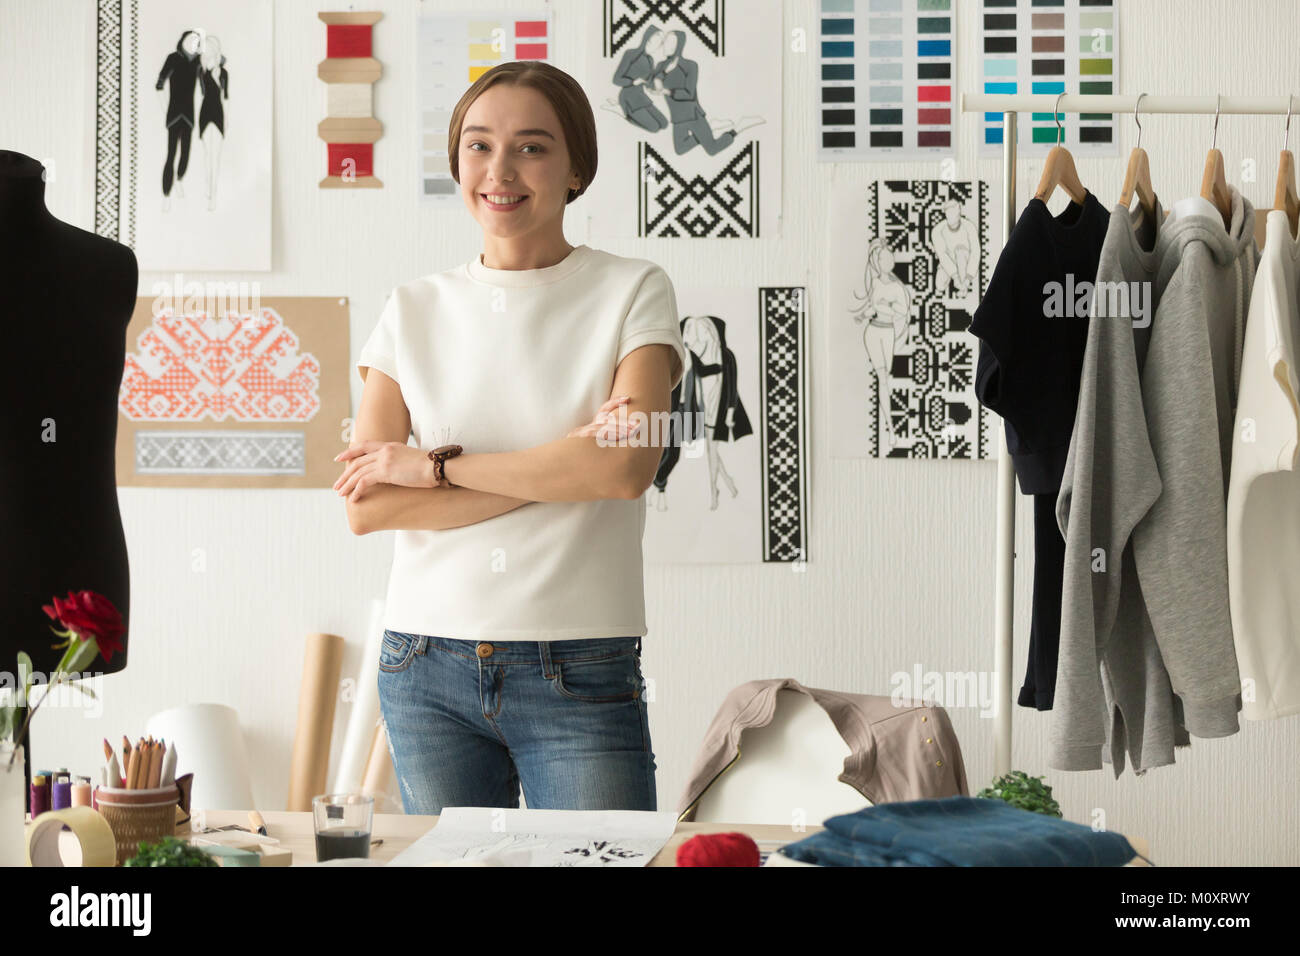 Ethnic embroidered clothing fashion designer standing looking at - Stock Image